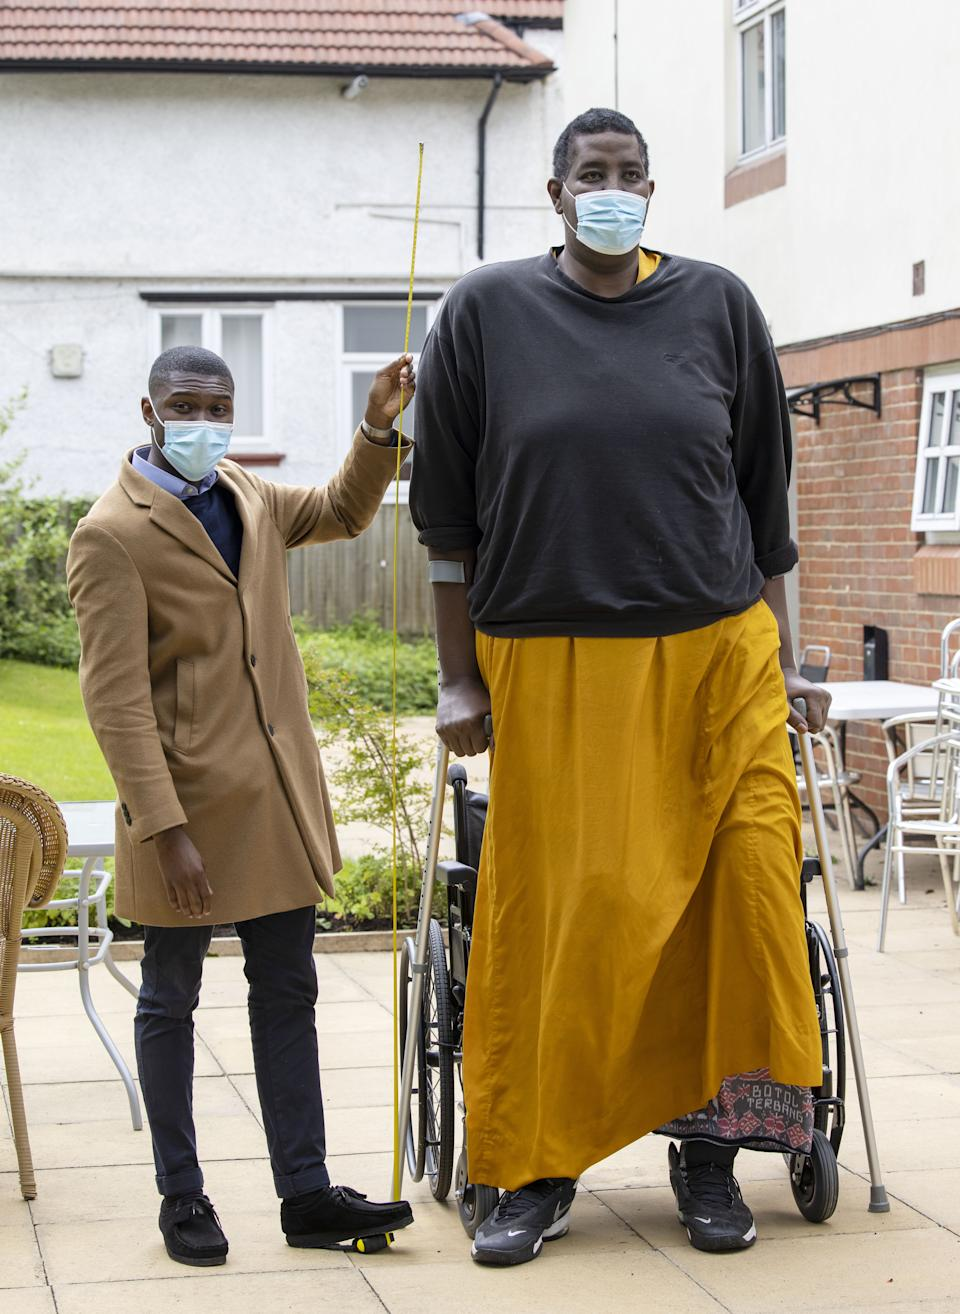 Hussain Bisad the second tallest man in the world at 7ft 8.9ins living in a care home in Harrow after a Kidney transplant meets My London's Thomas Kingsley